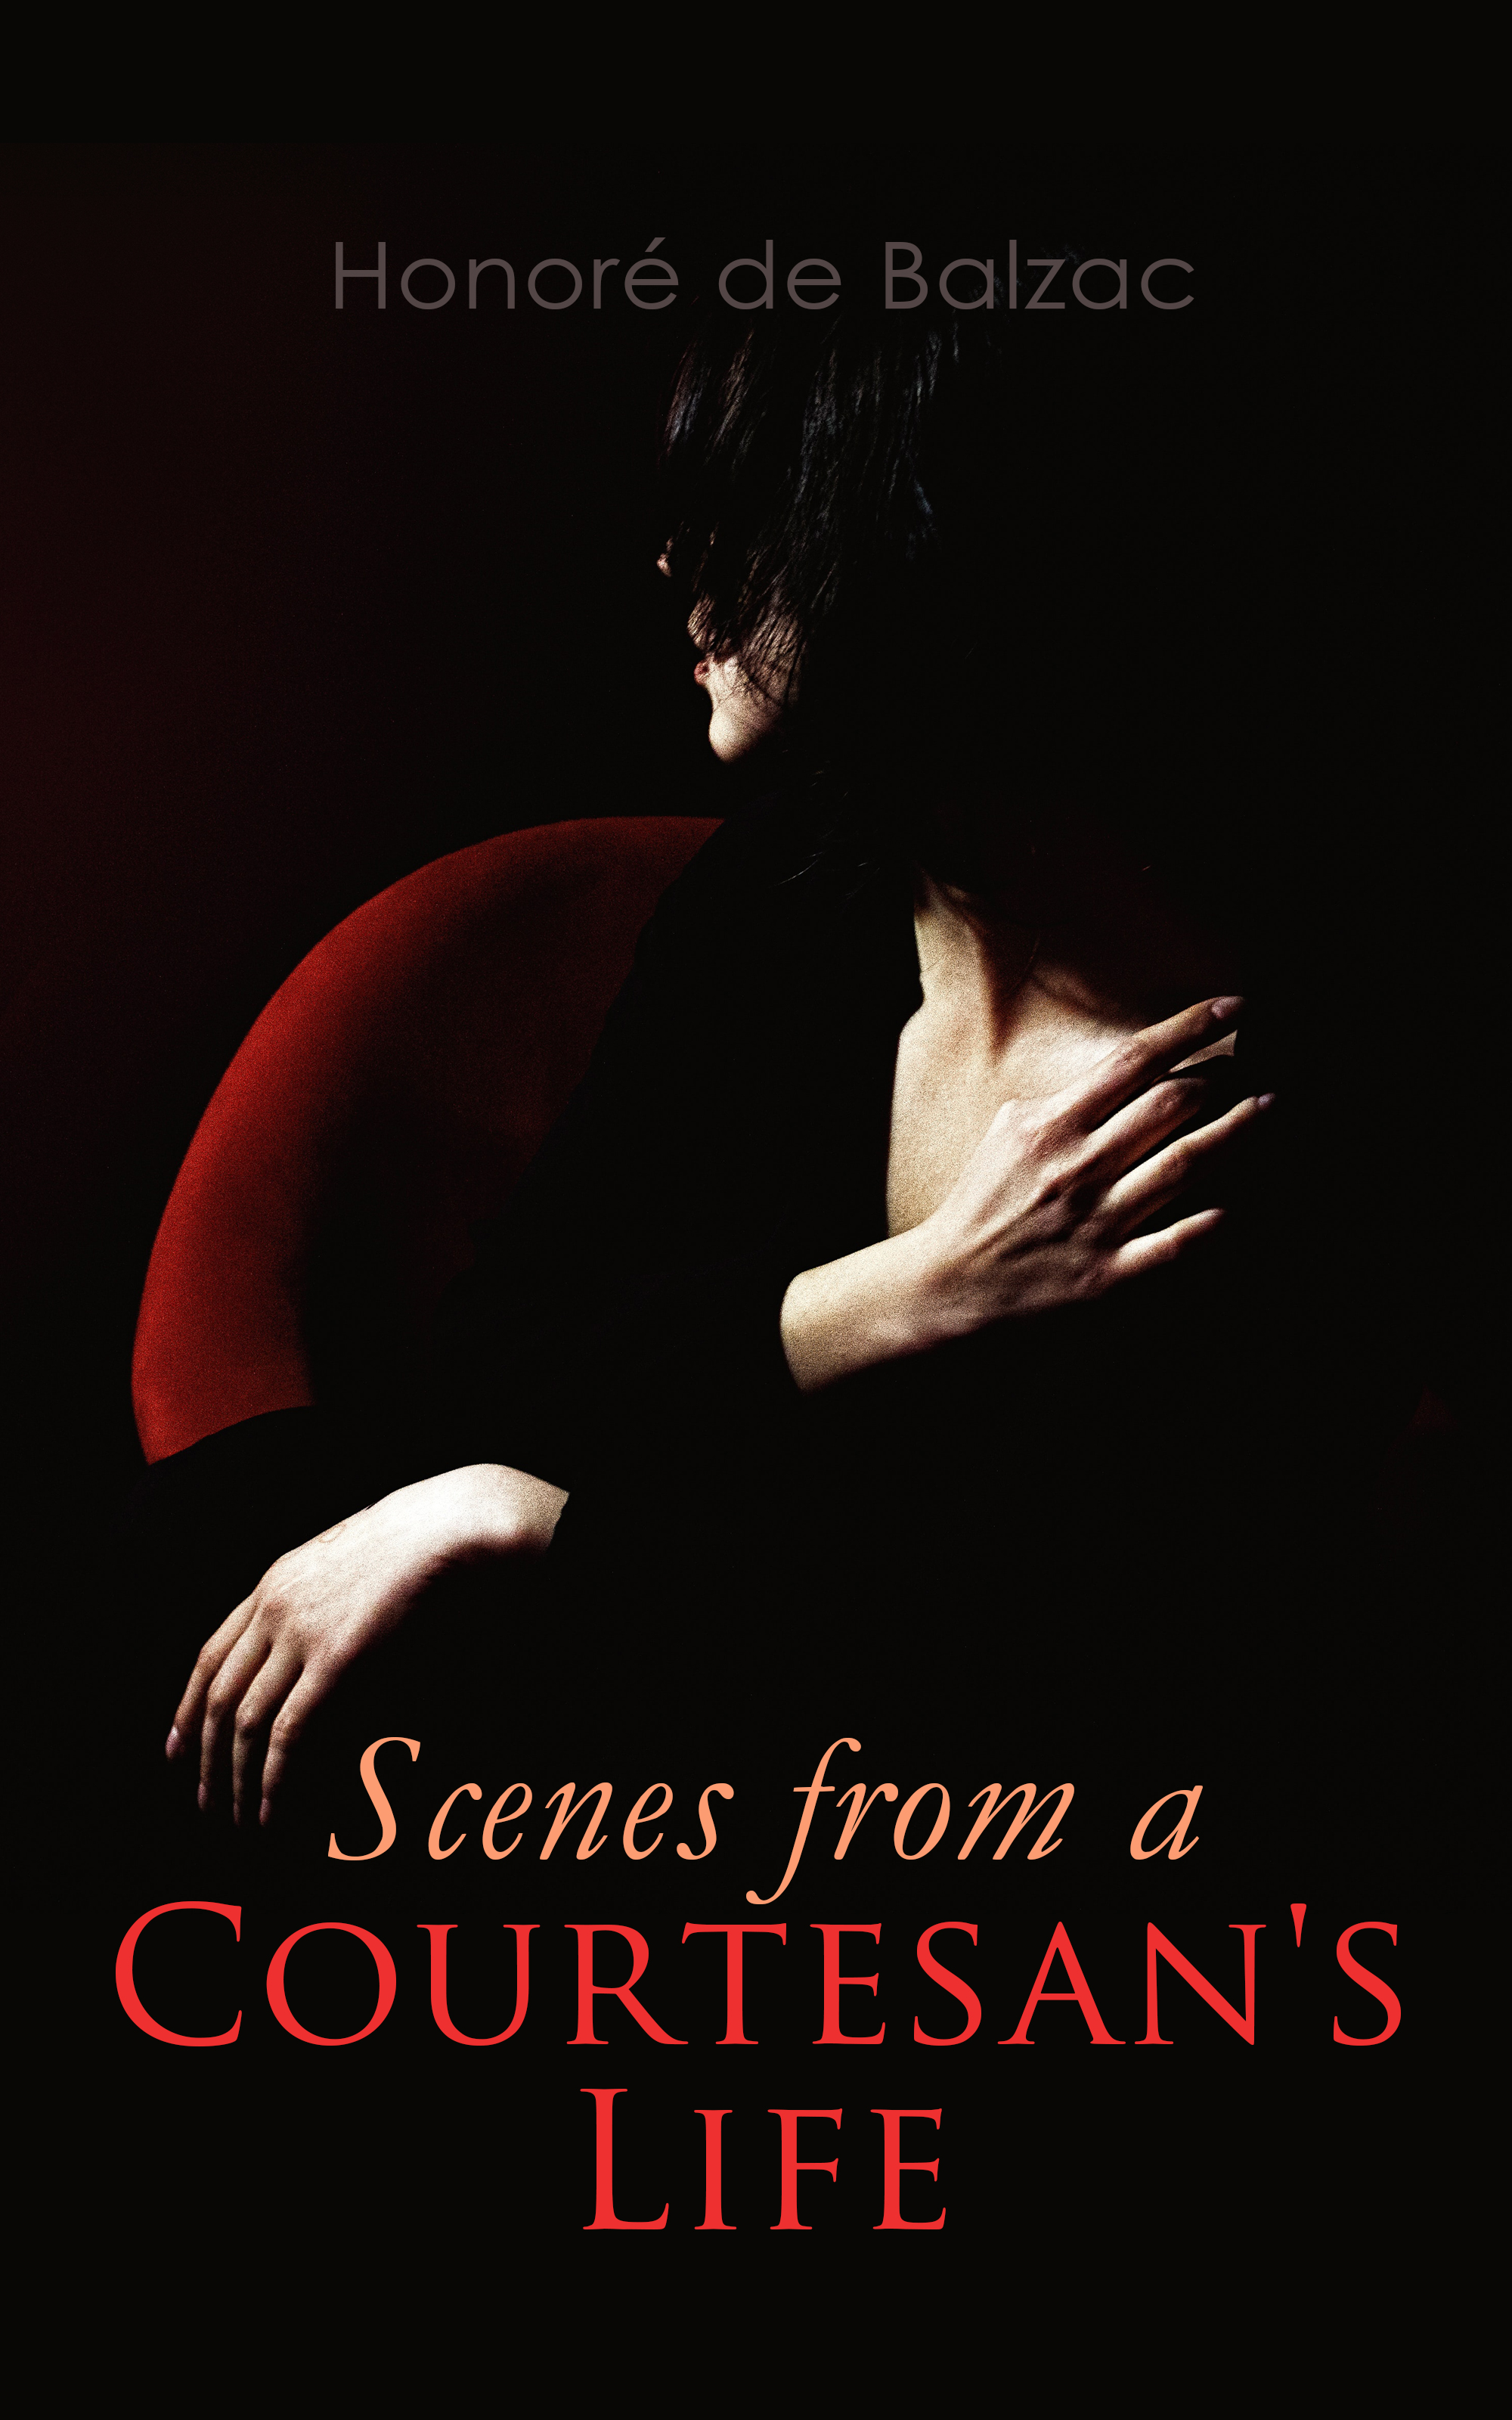 scenes from a courtesans life